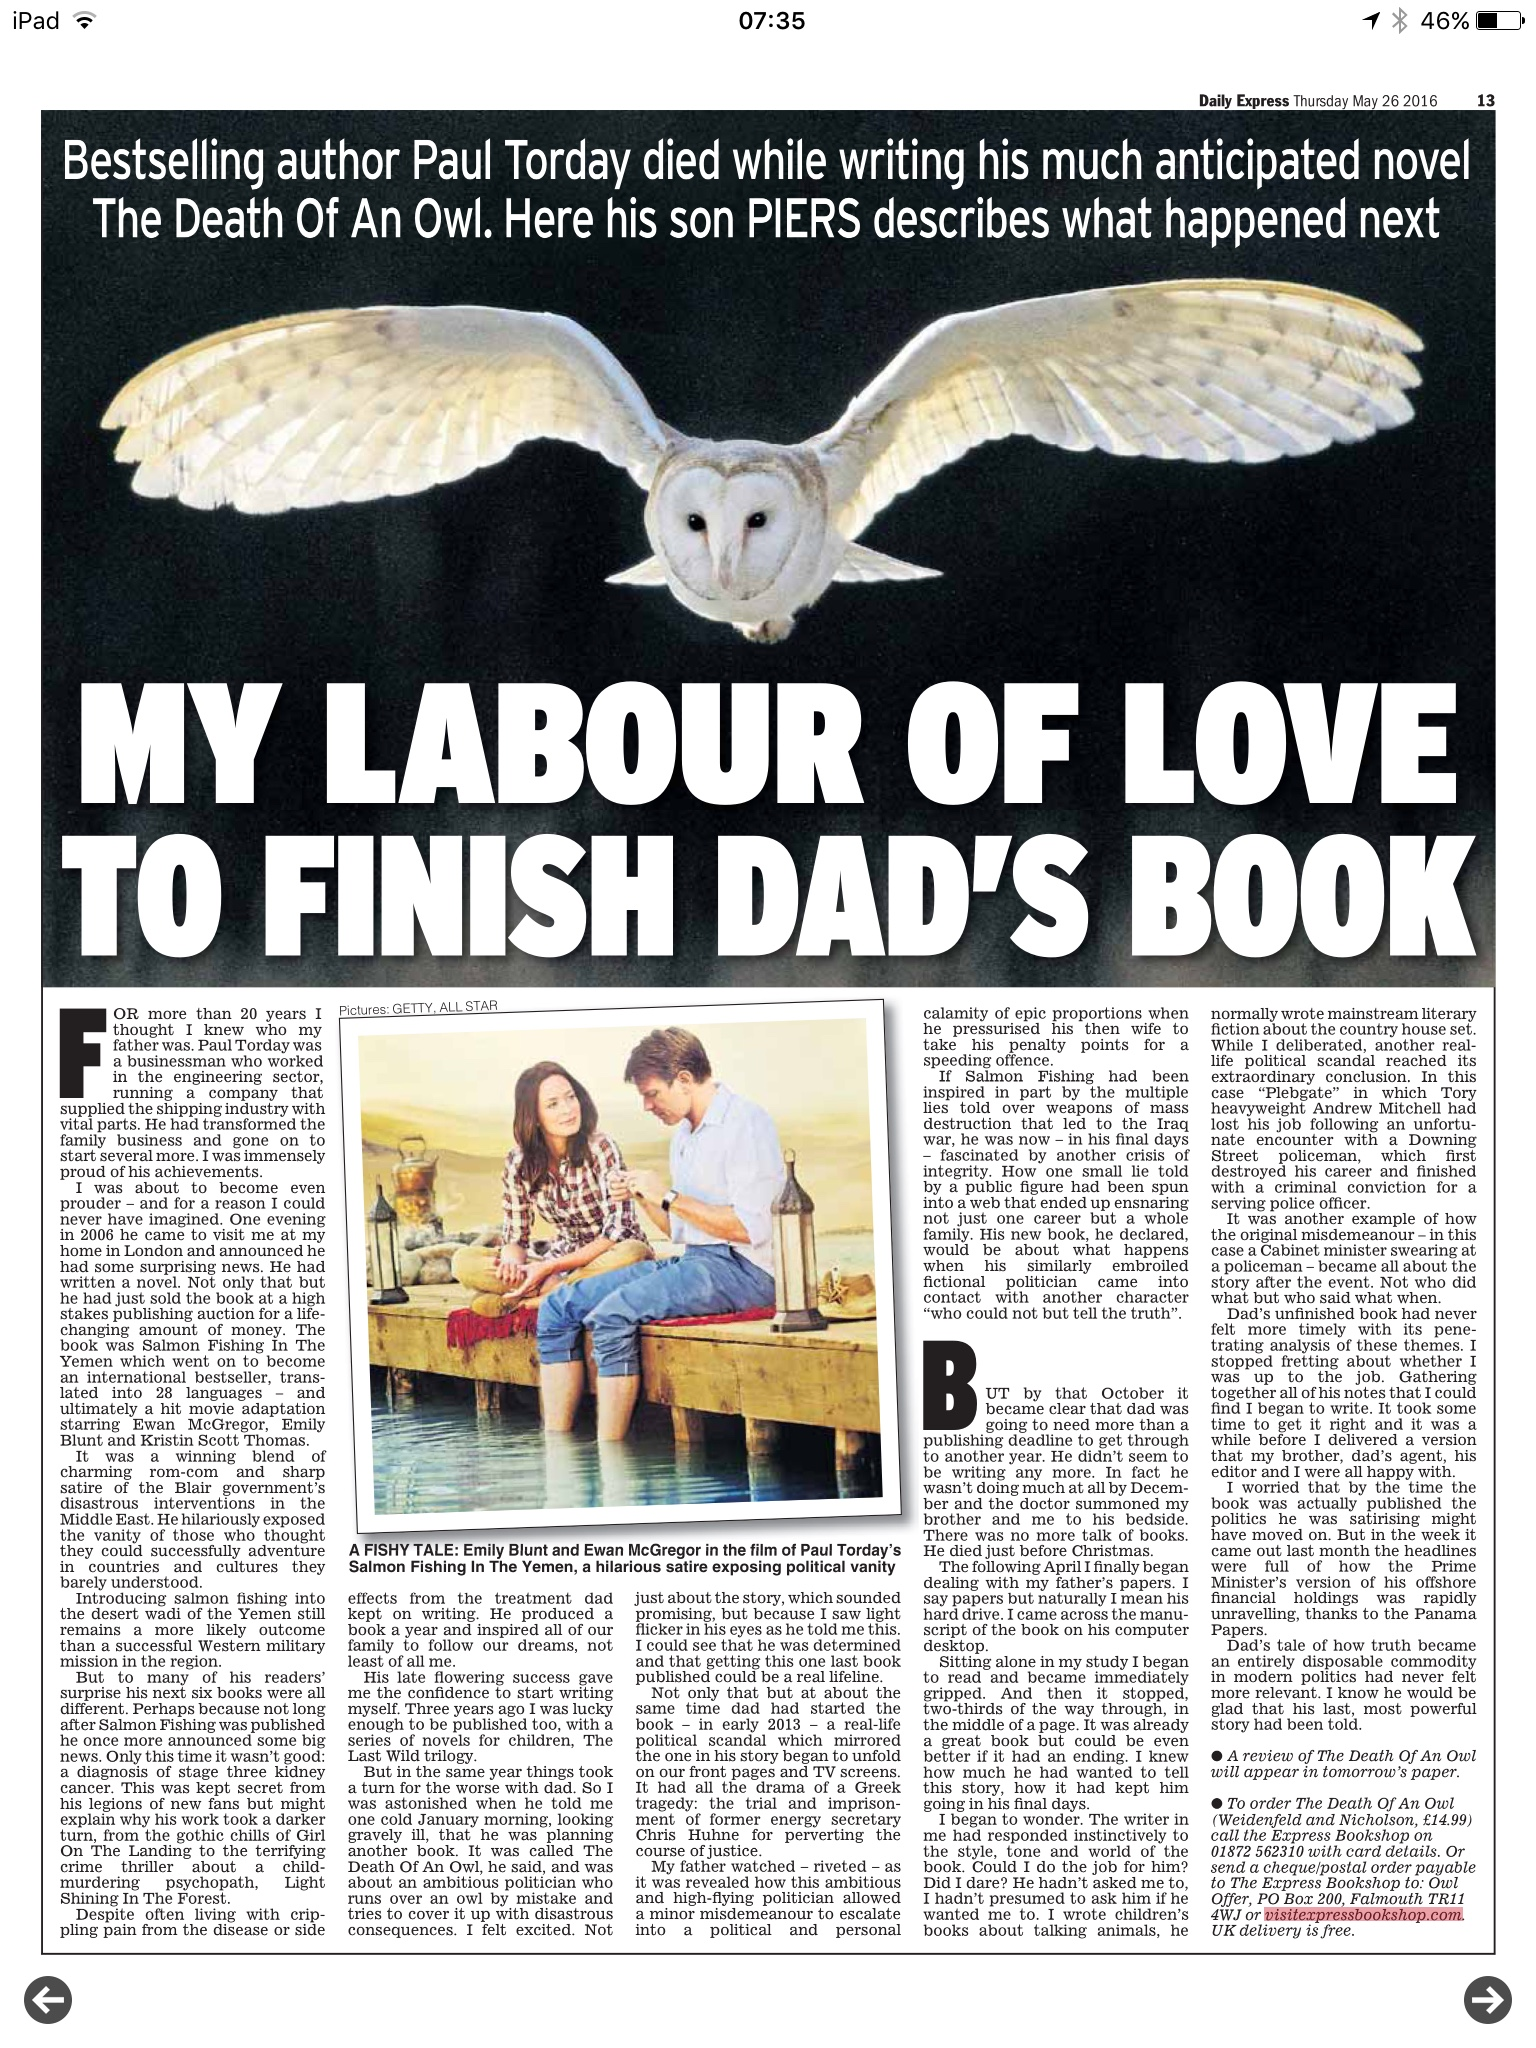 Piers Torday on finishing Death of an Owl by Paul Torday for Daily Express